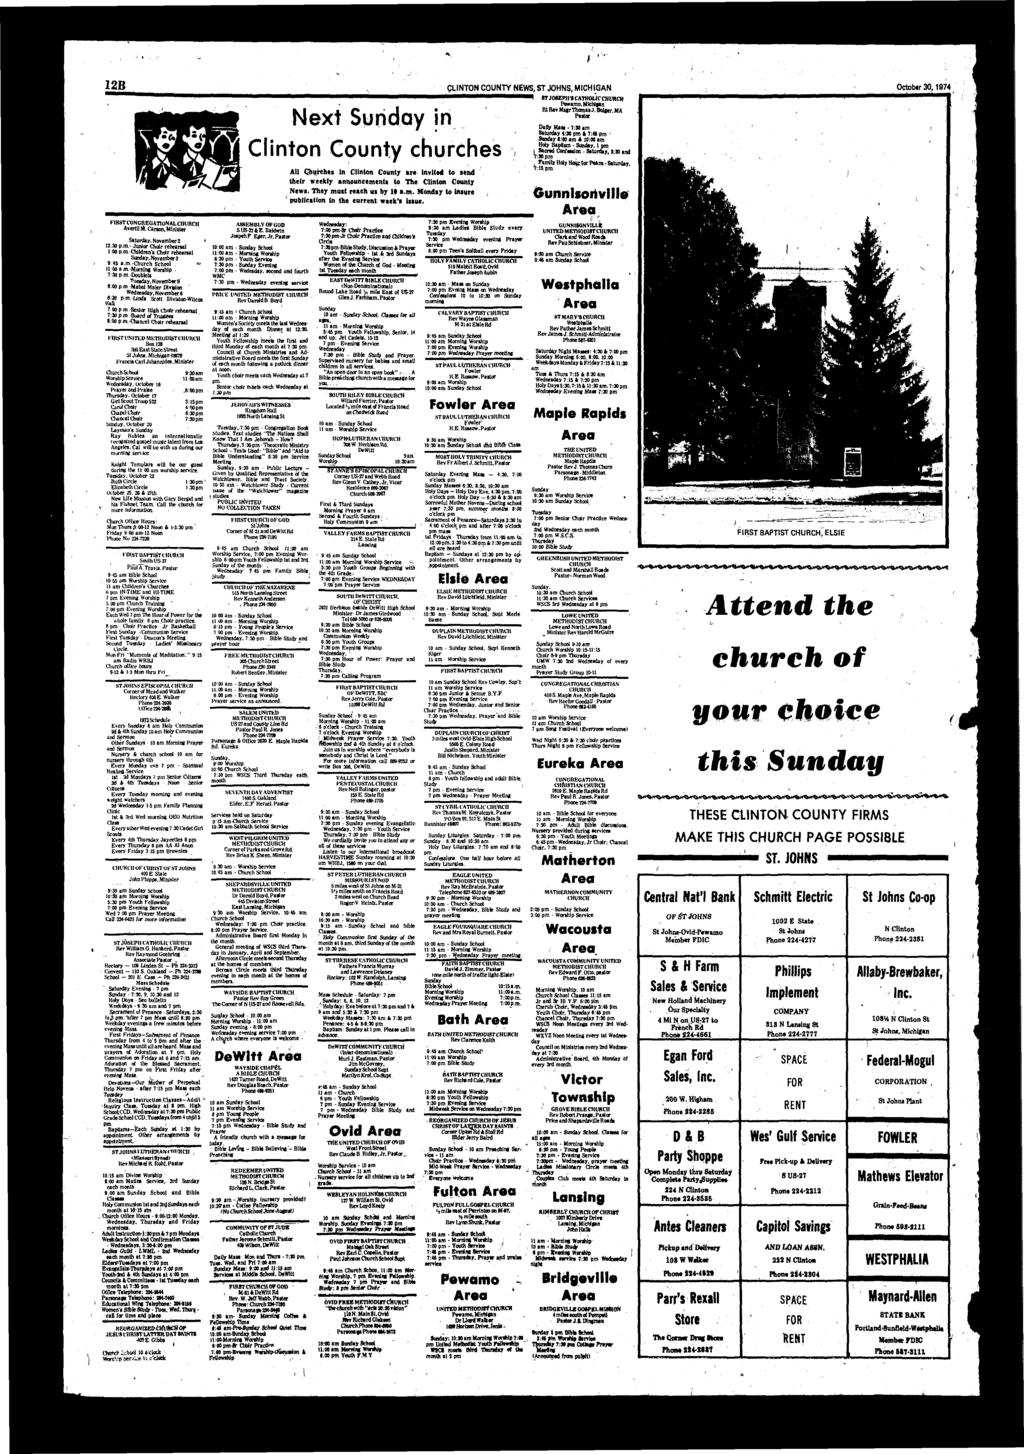 12B CLINTON COUNTY NEWS, ST JOHNS, MICHIGAN October 30,1974 FIRST CONGREGATIONAL CHURCH AveHl)M.C4rsen,MlnIs.t*r Sturdy. November 2» 12:30 p.m.- Junior Chdr rehersl 100pm.